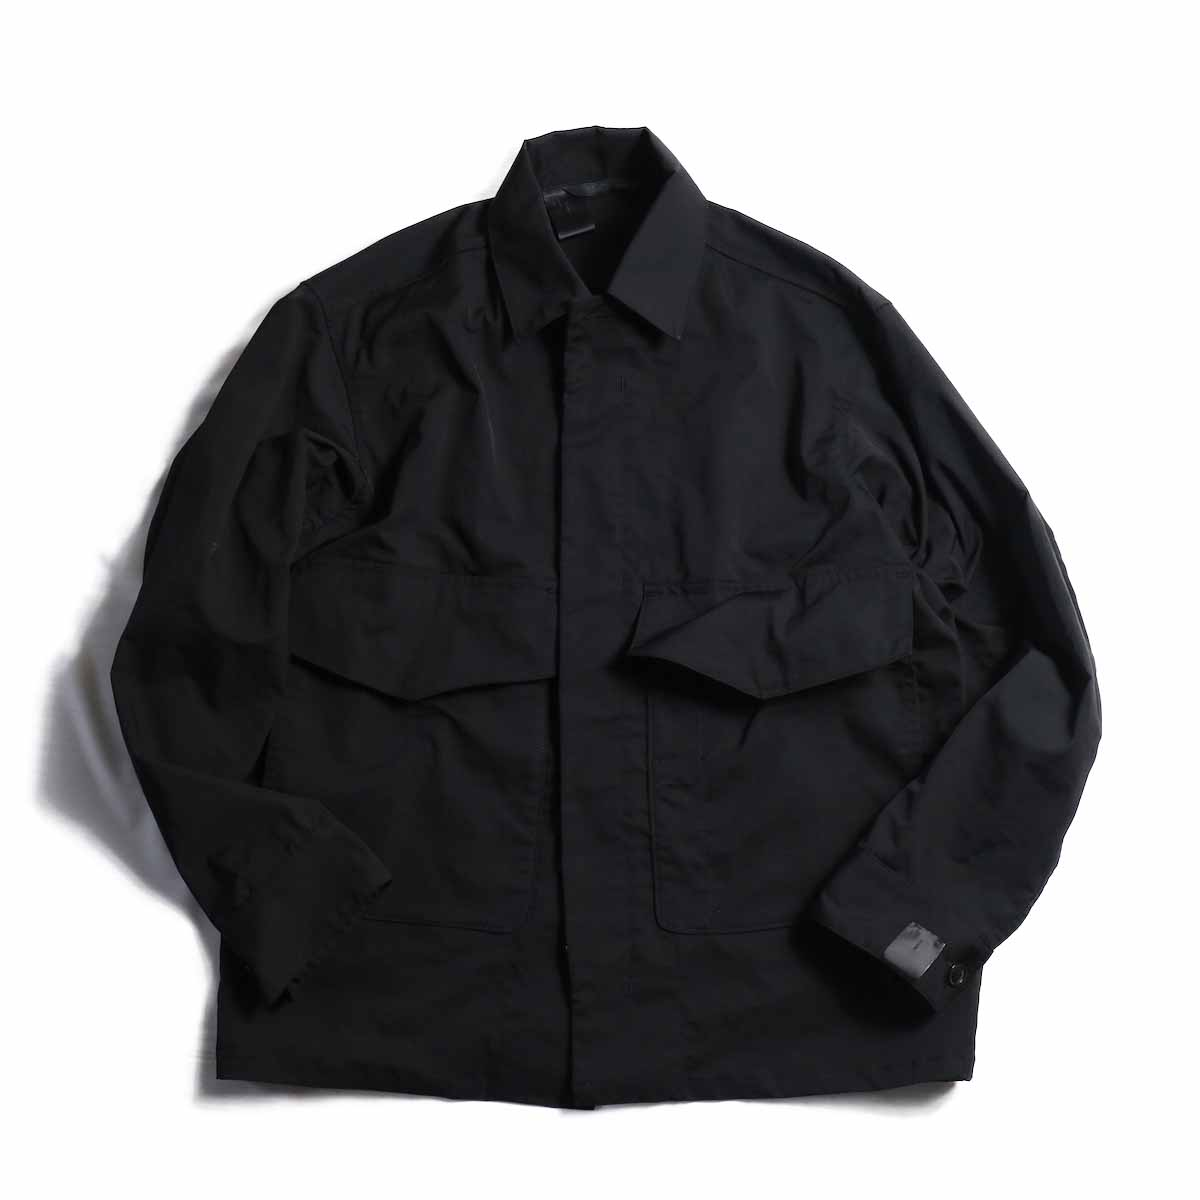 N.HOOLYWOOD / 282-BL03-016-peg LONG SLEEVE SHIRT JACKET -BLACK